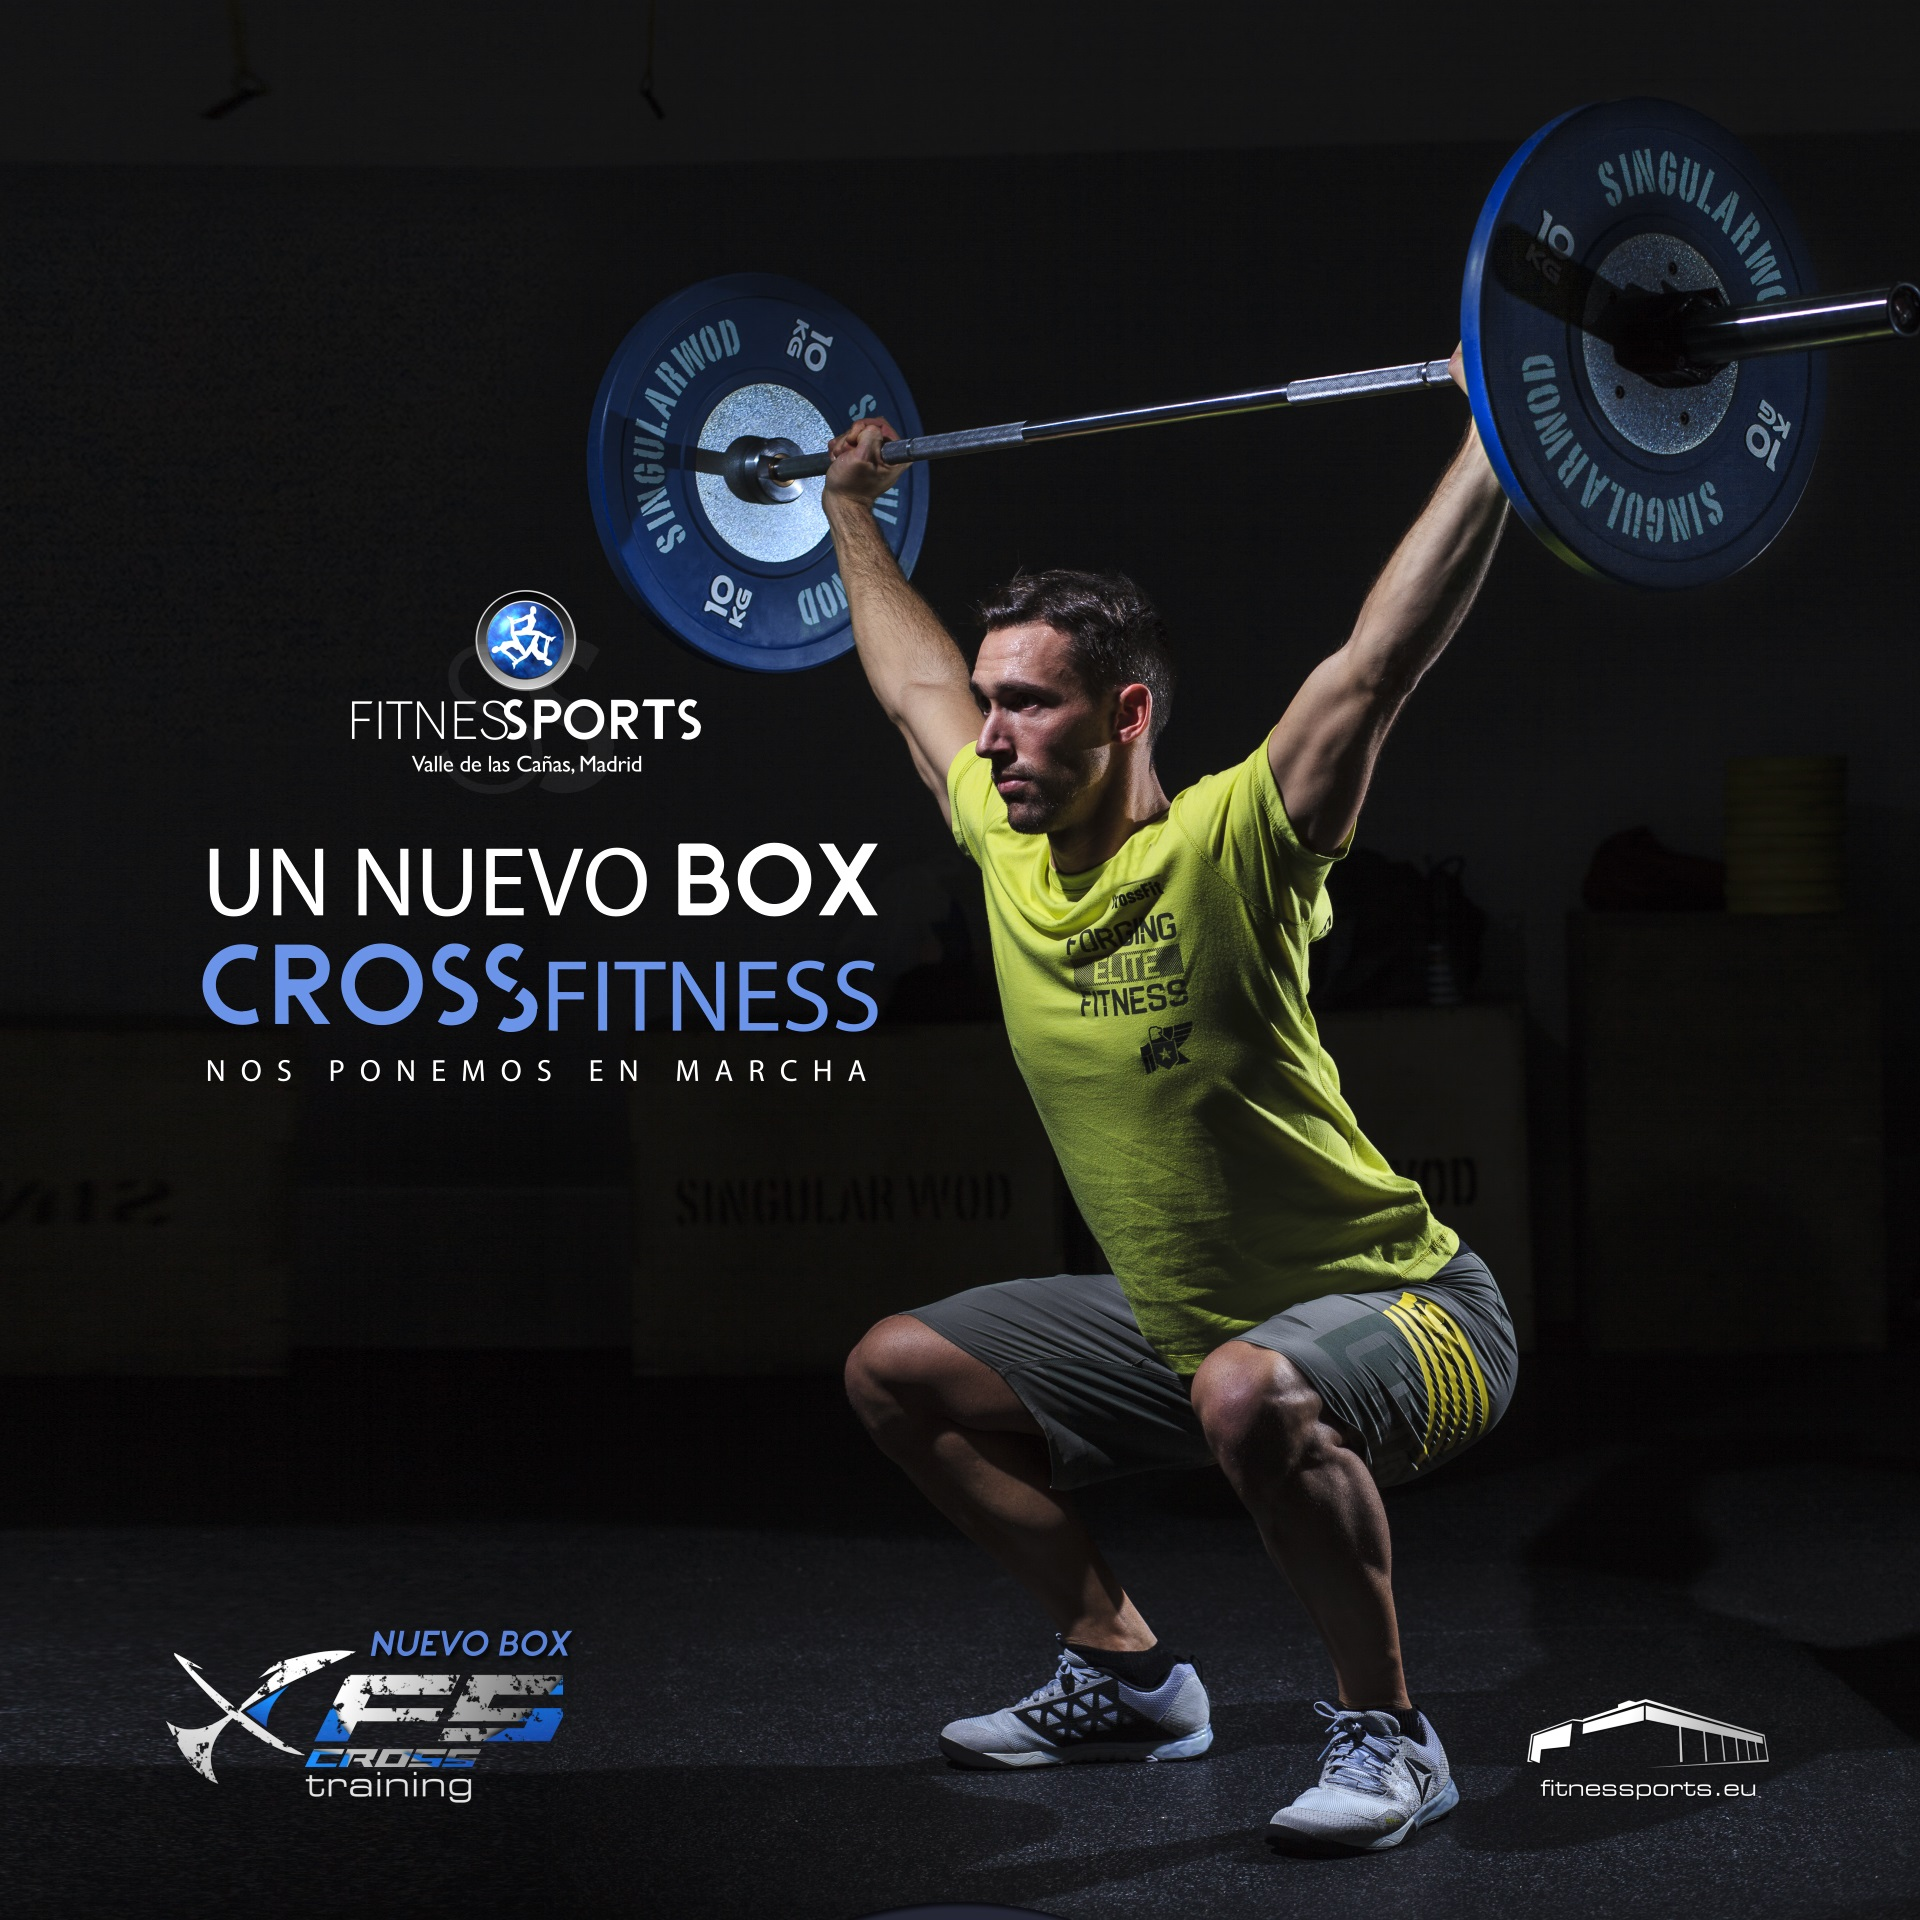 nuevo-box-fs-crossfitness-fitness-sports-valle-de-las-canas